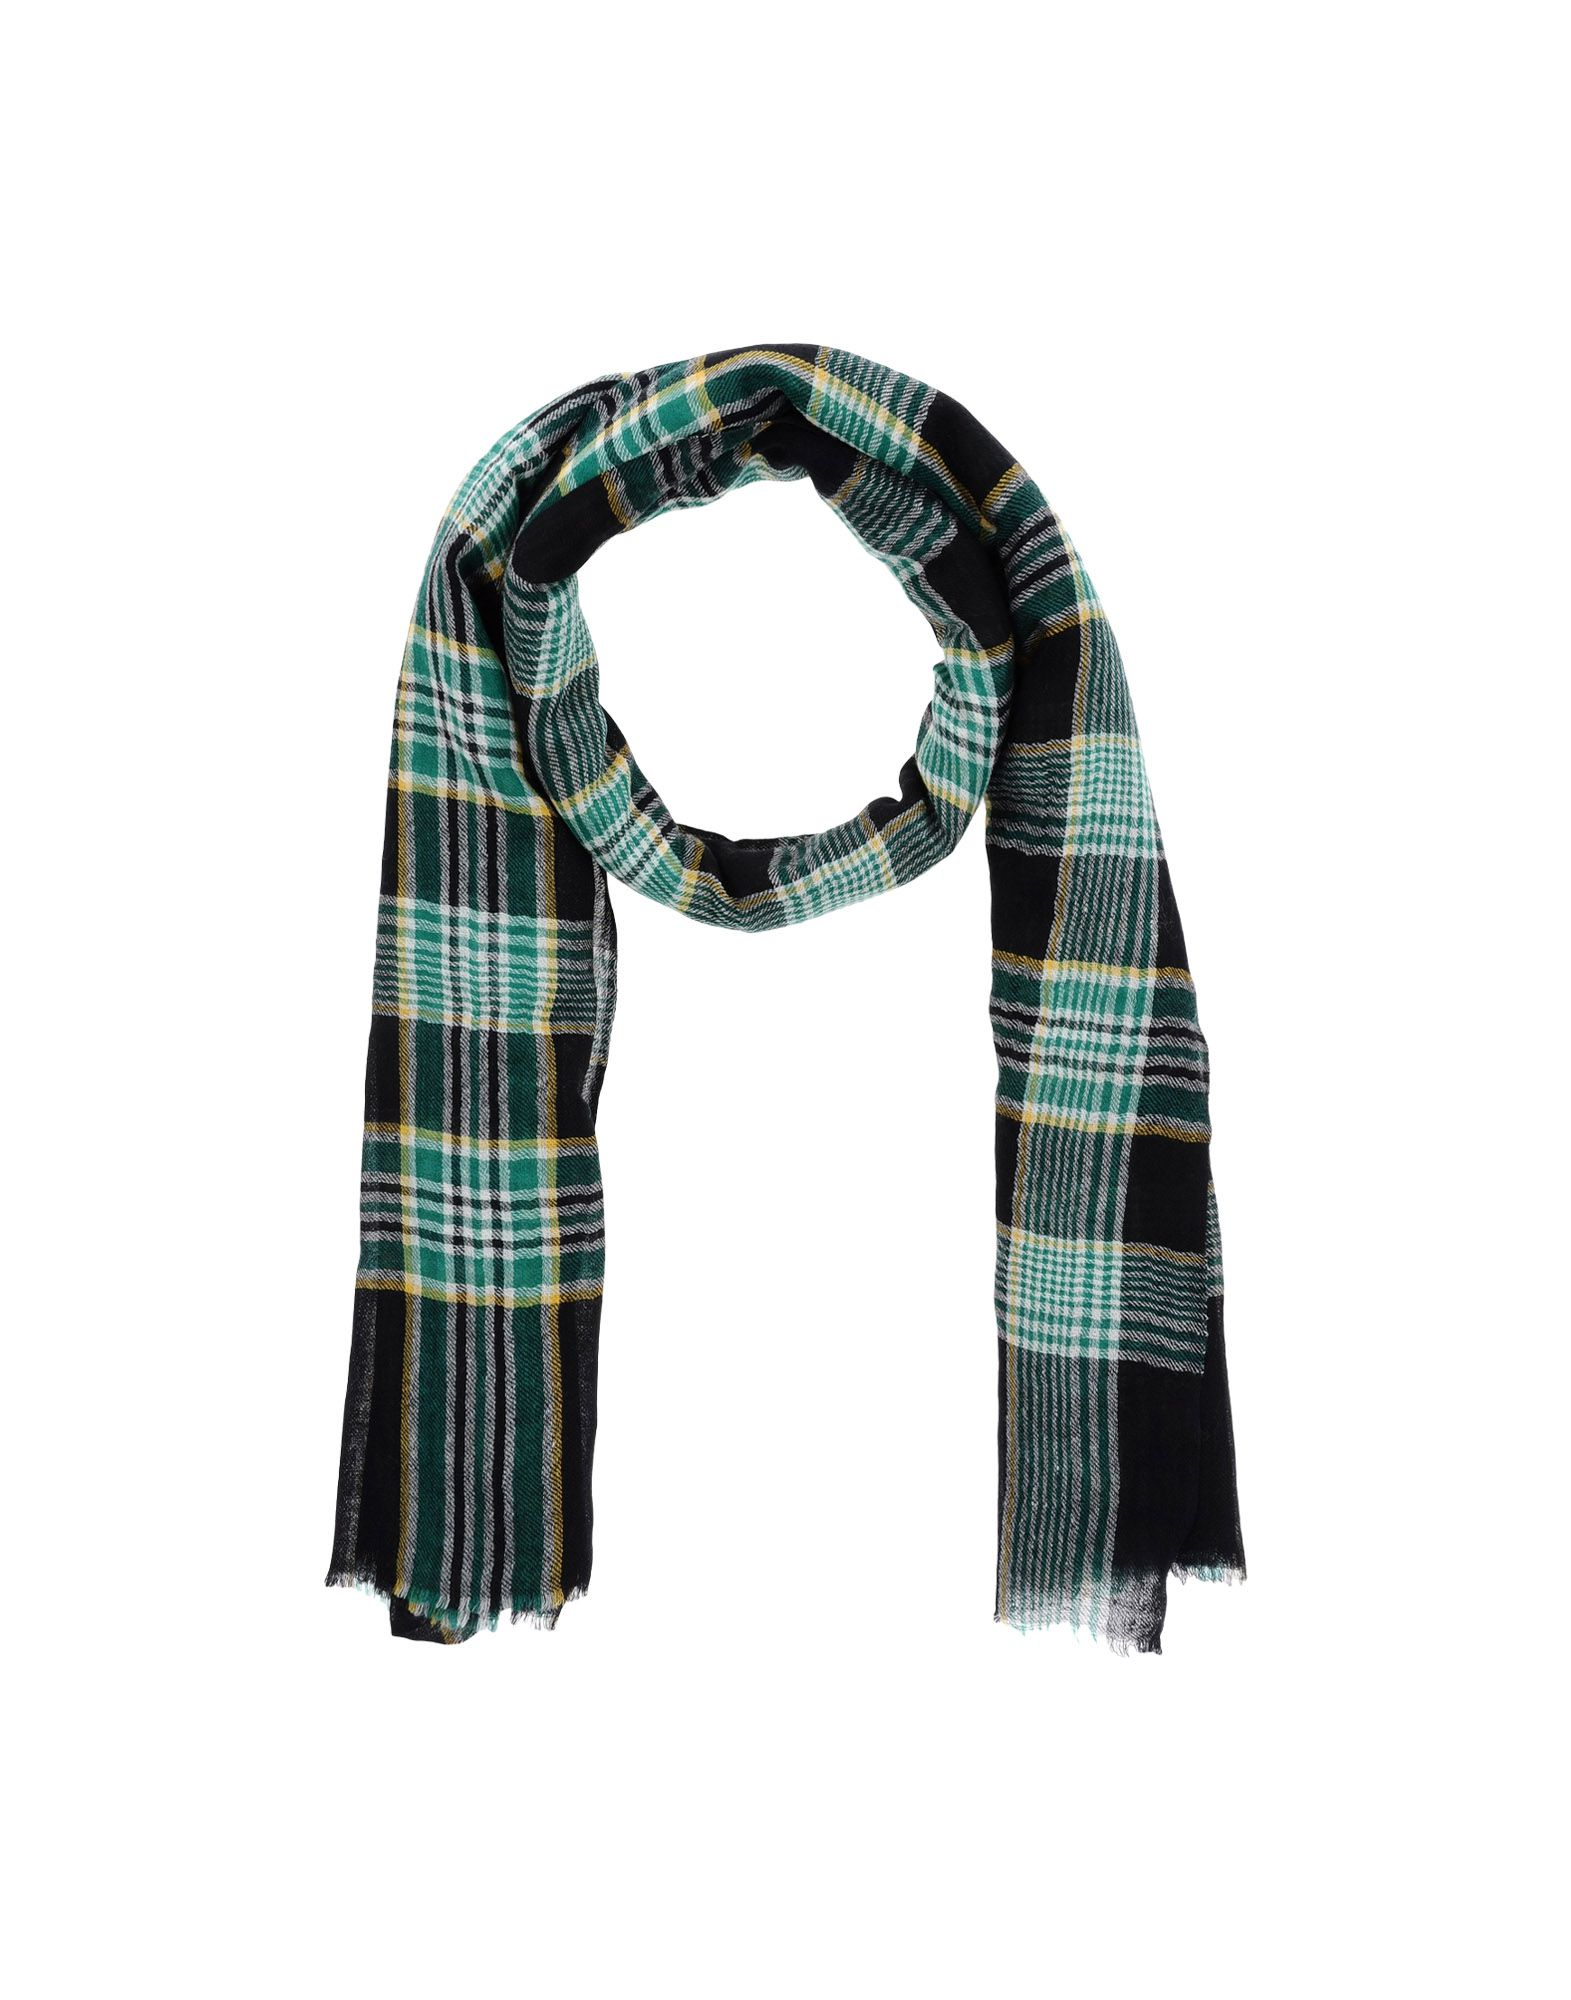 LOVAT & GREEN Scarves in Black